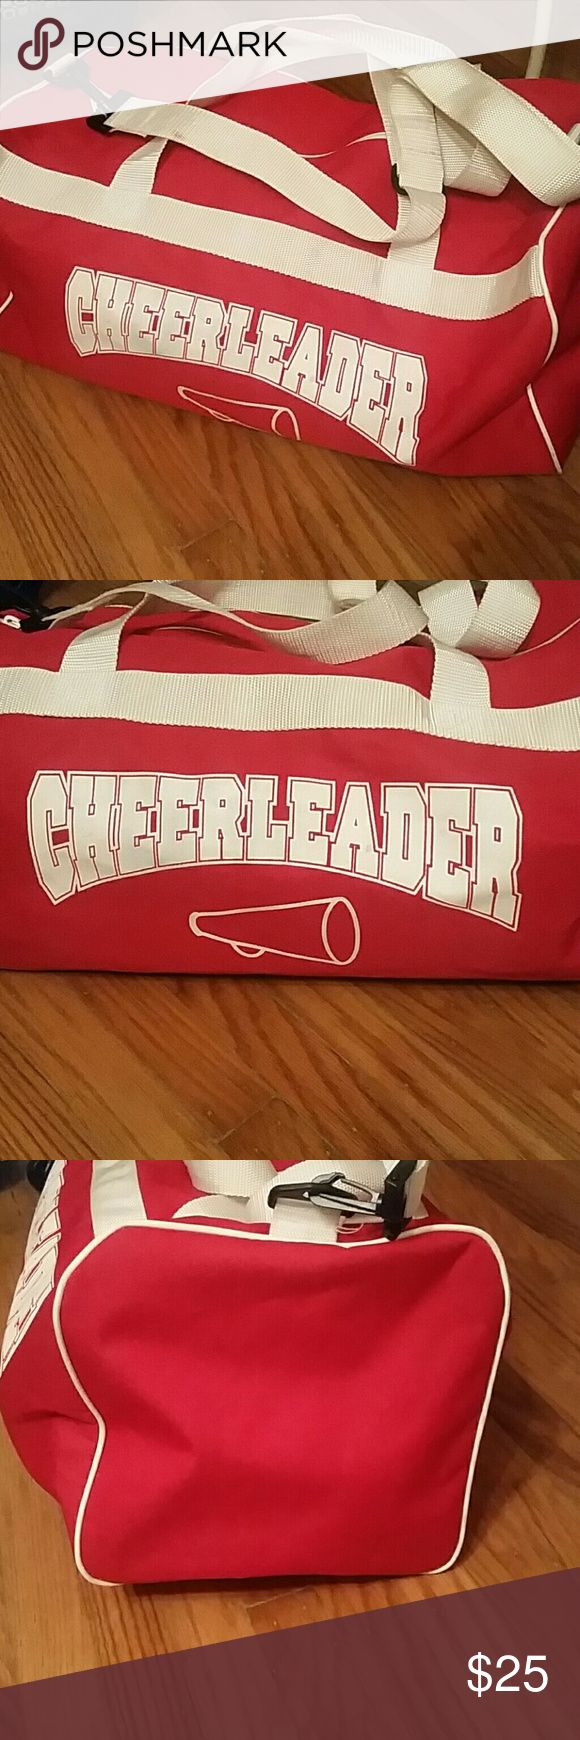 Cheerleader Duffle Bag Cheerleader Duffle Bag 20.5 x 10.5  Brand new condition except for slight spots on shoulder strap. Bags